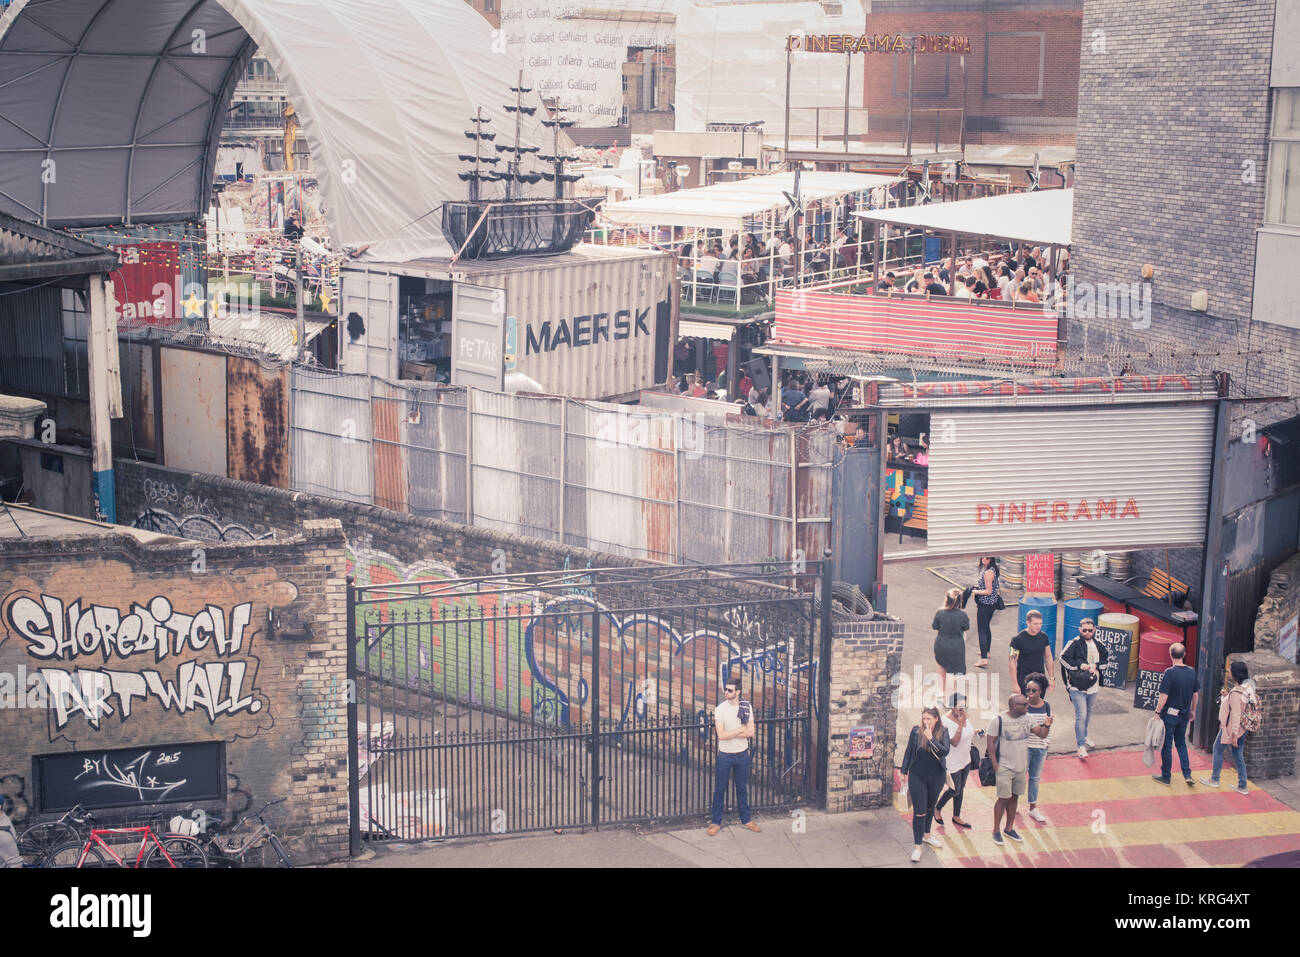 Pop-up street food market venue called Dinerama popular among young trendy people in Shoreditch Yard,19 Great Eastern - Stock Image